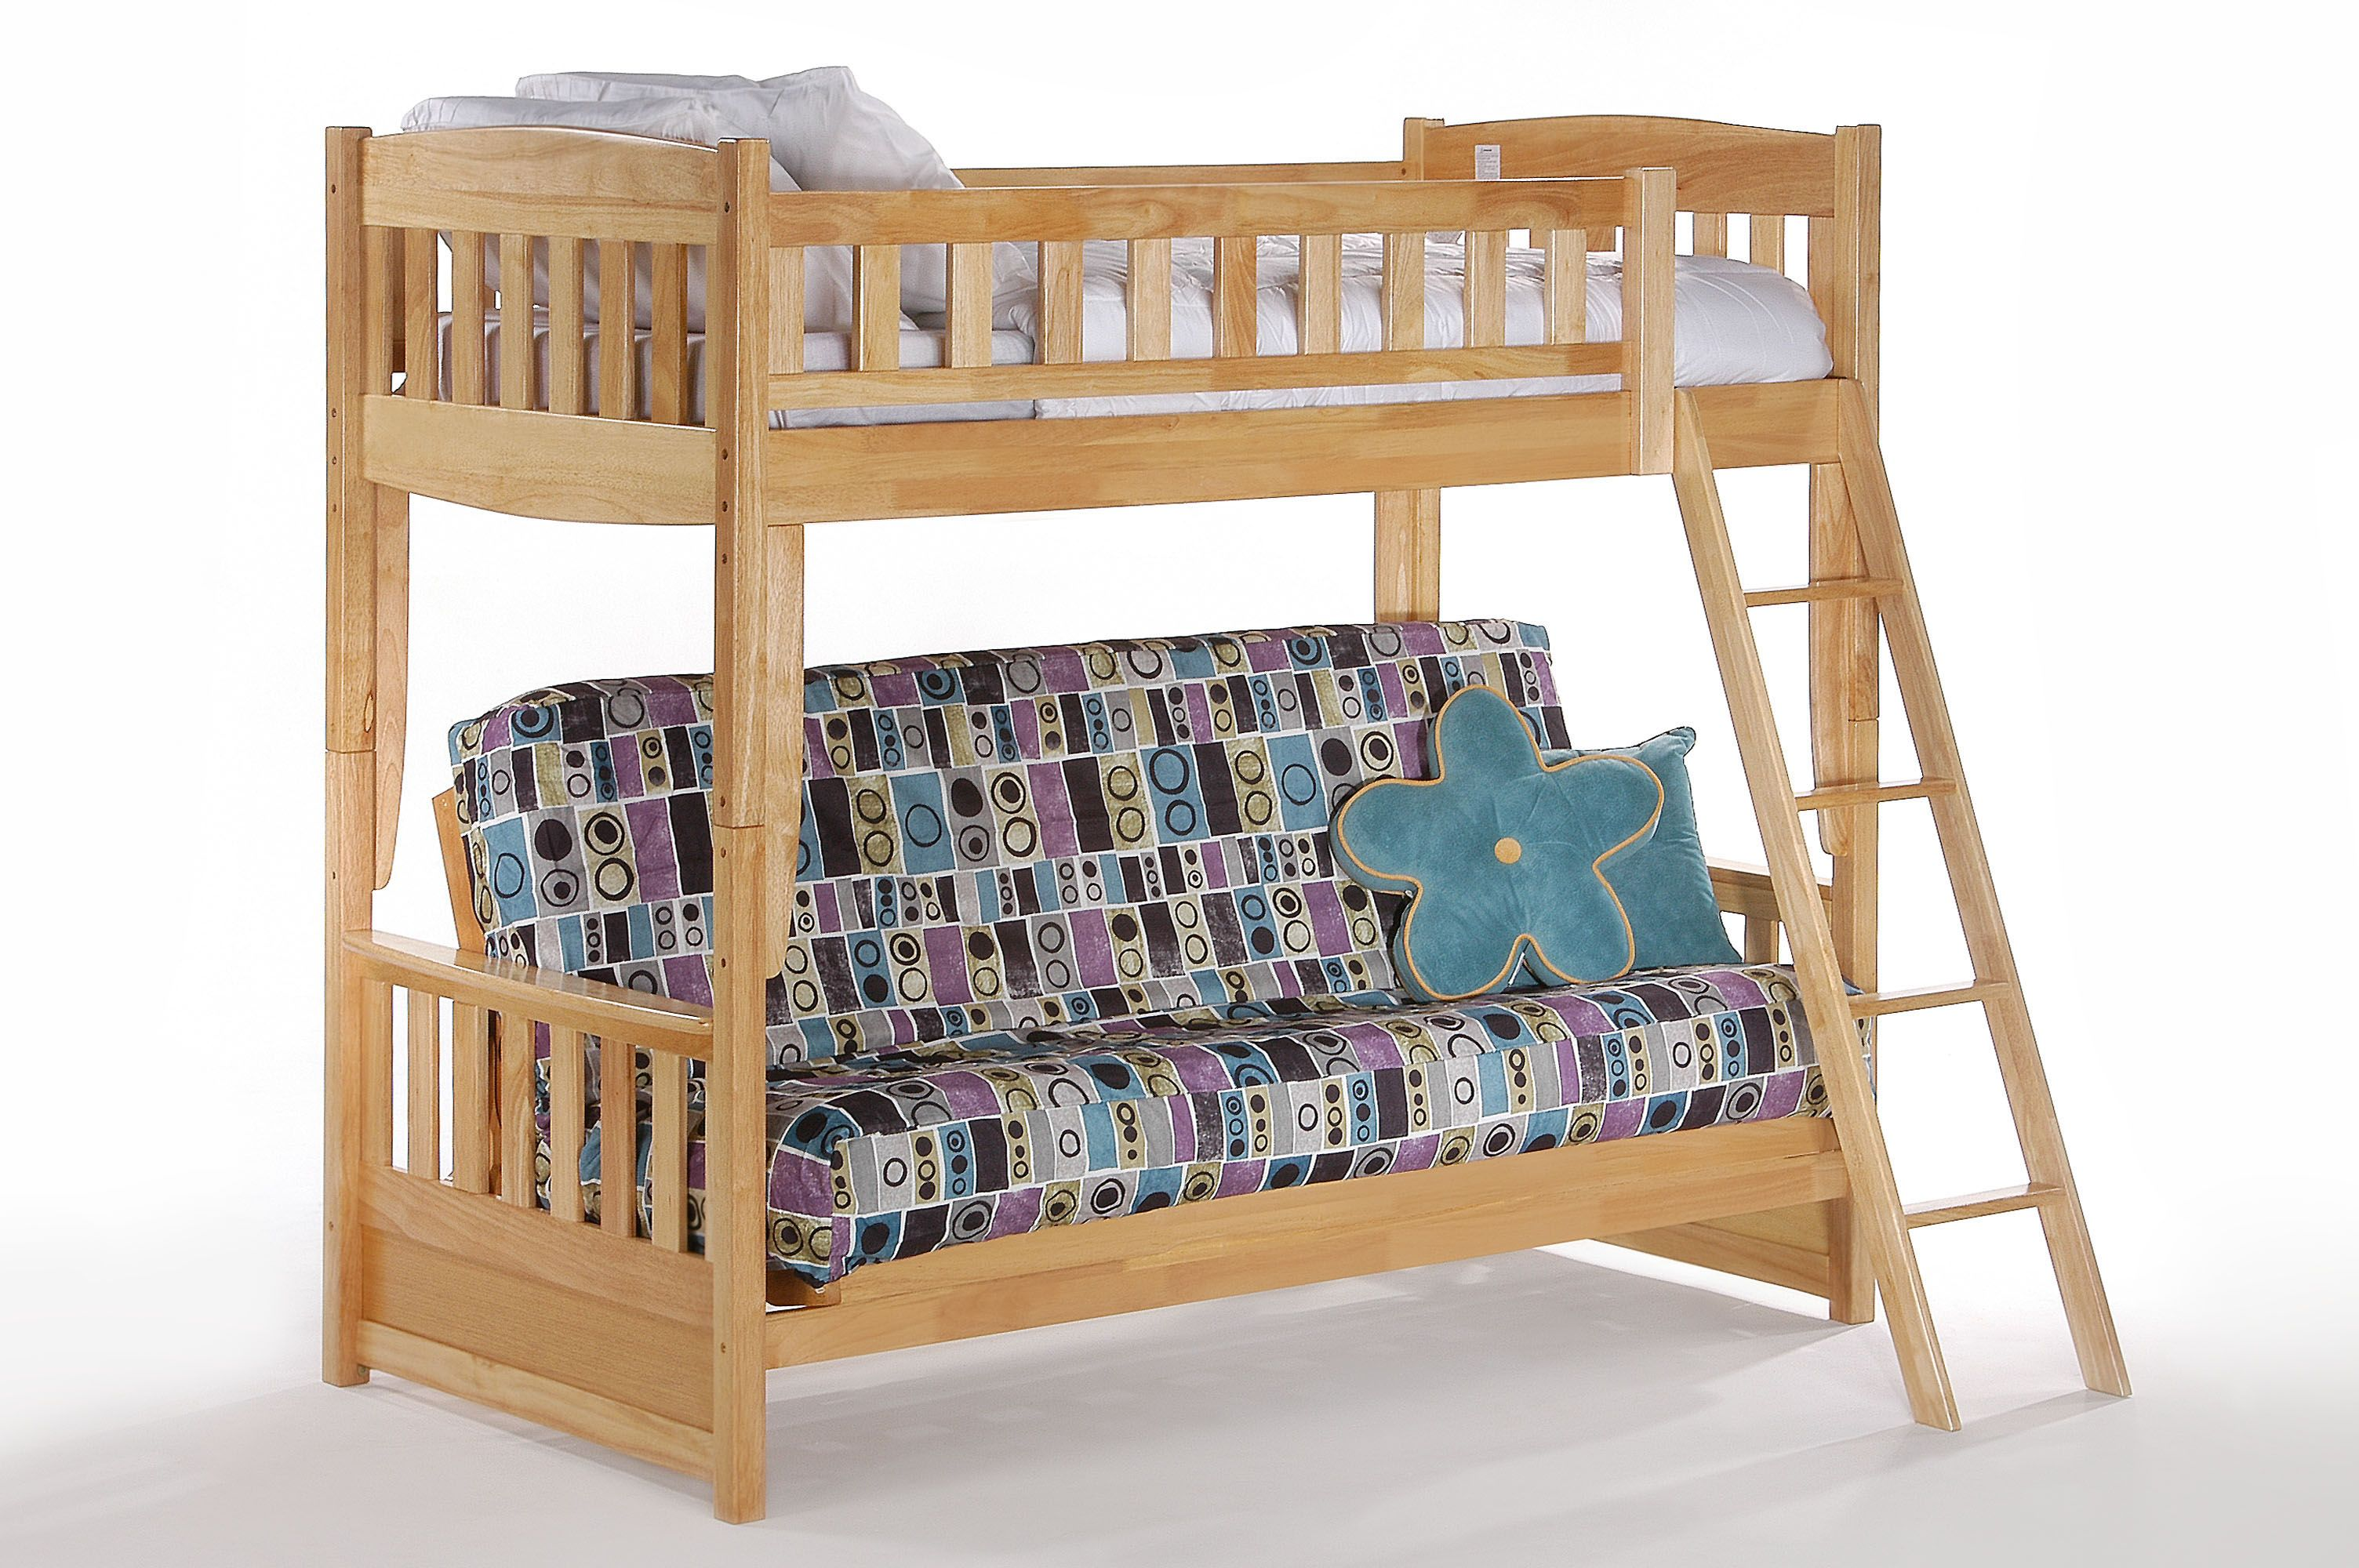 Cinnamon Futon Bunk Night Day Double Twin Bed Size Frame With Made Of High Density Wood Imported From Malaysia